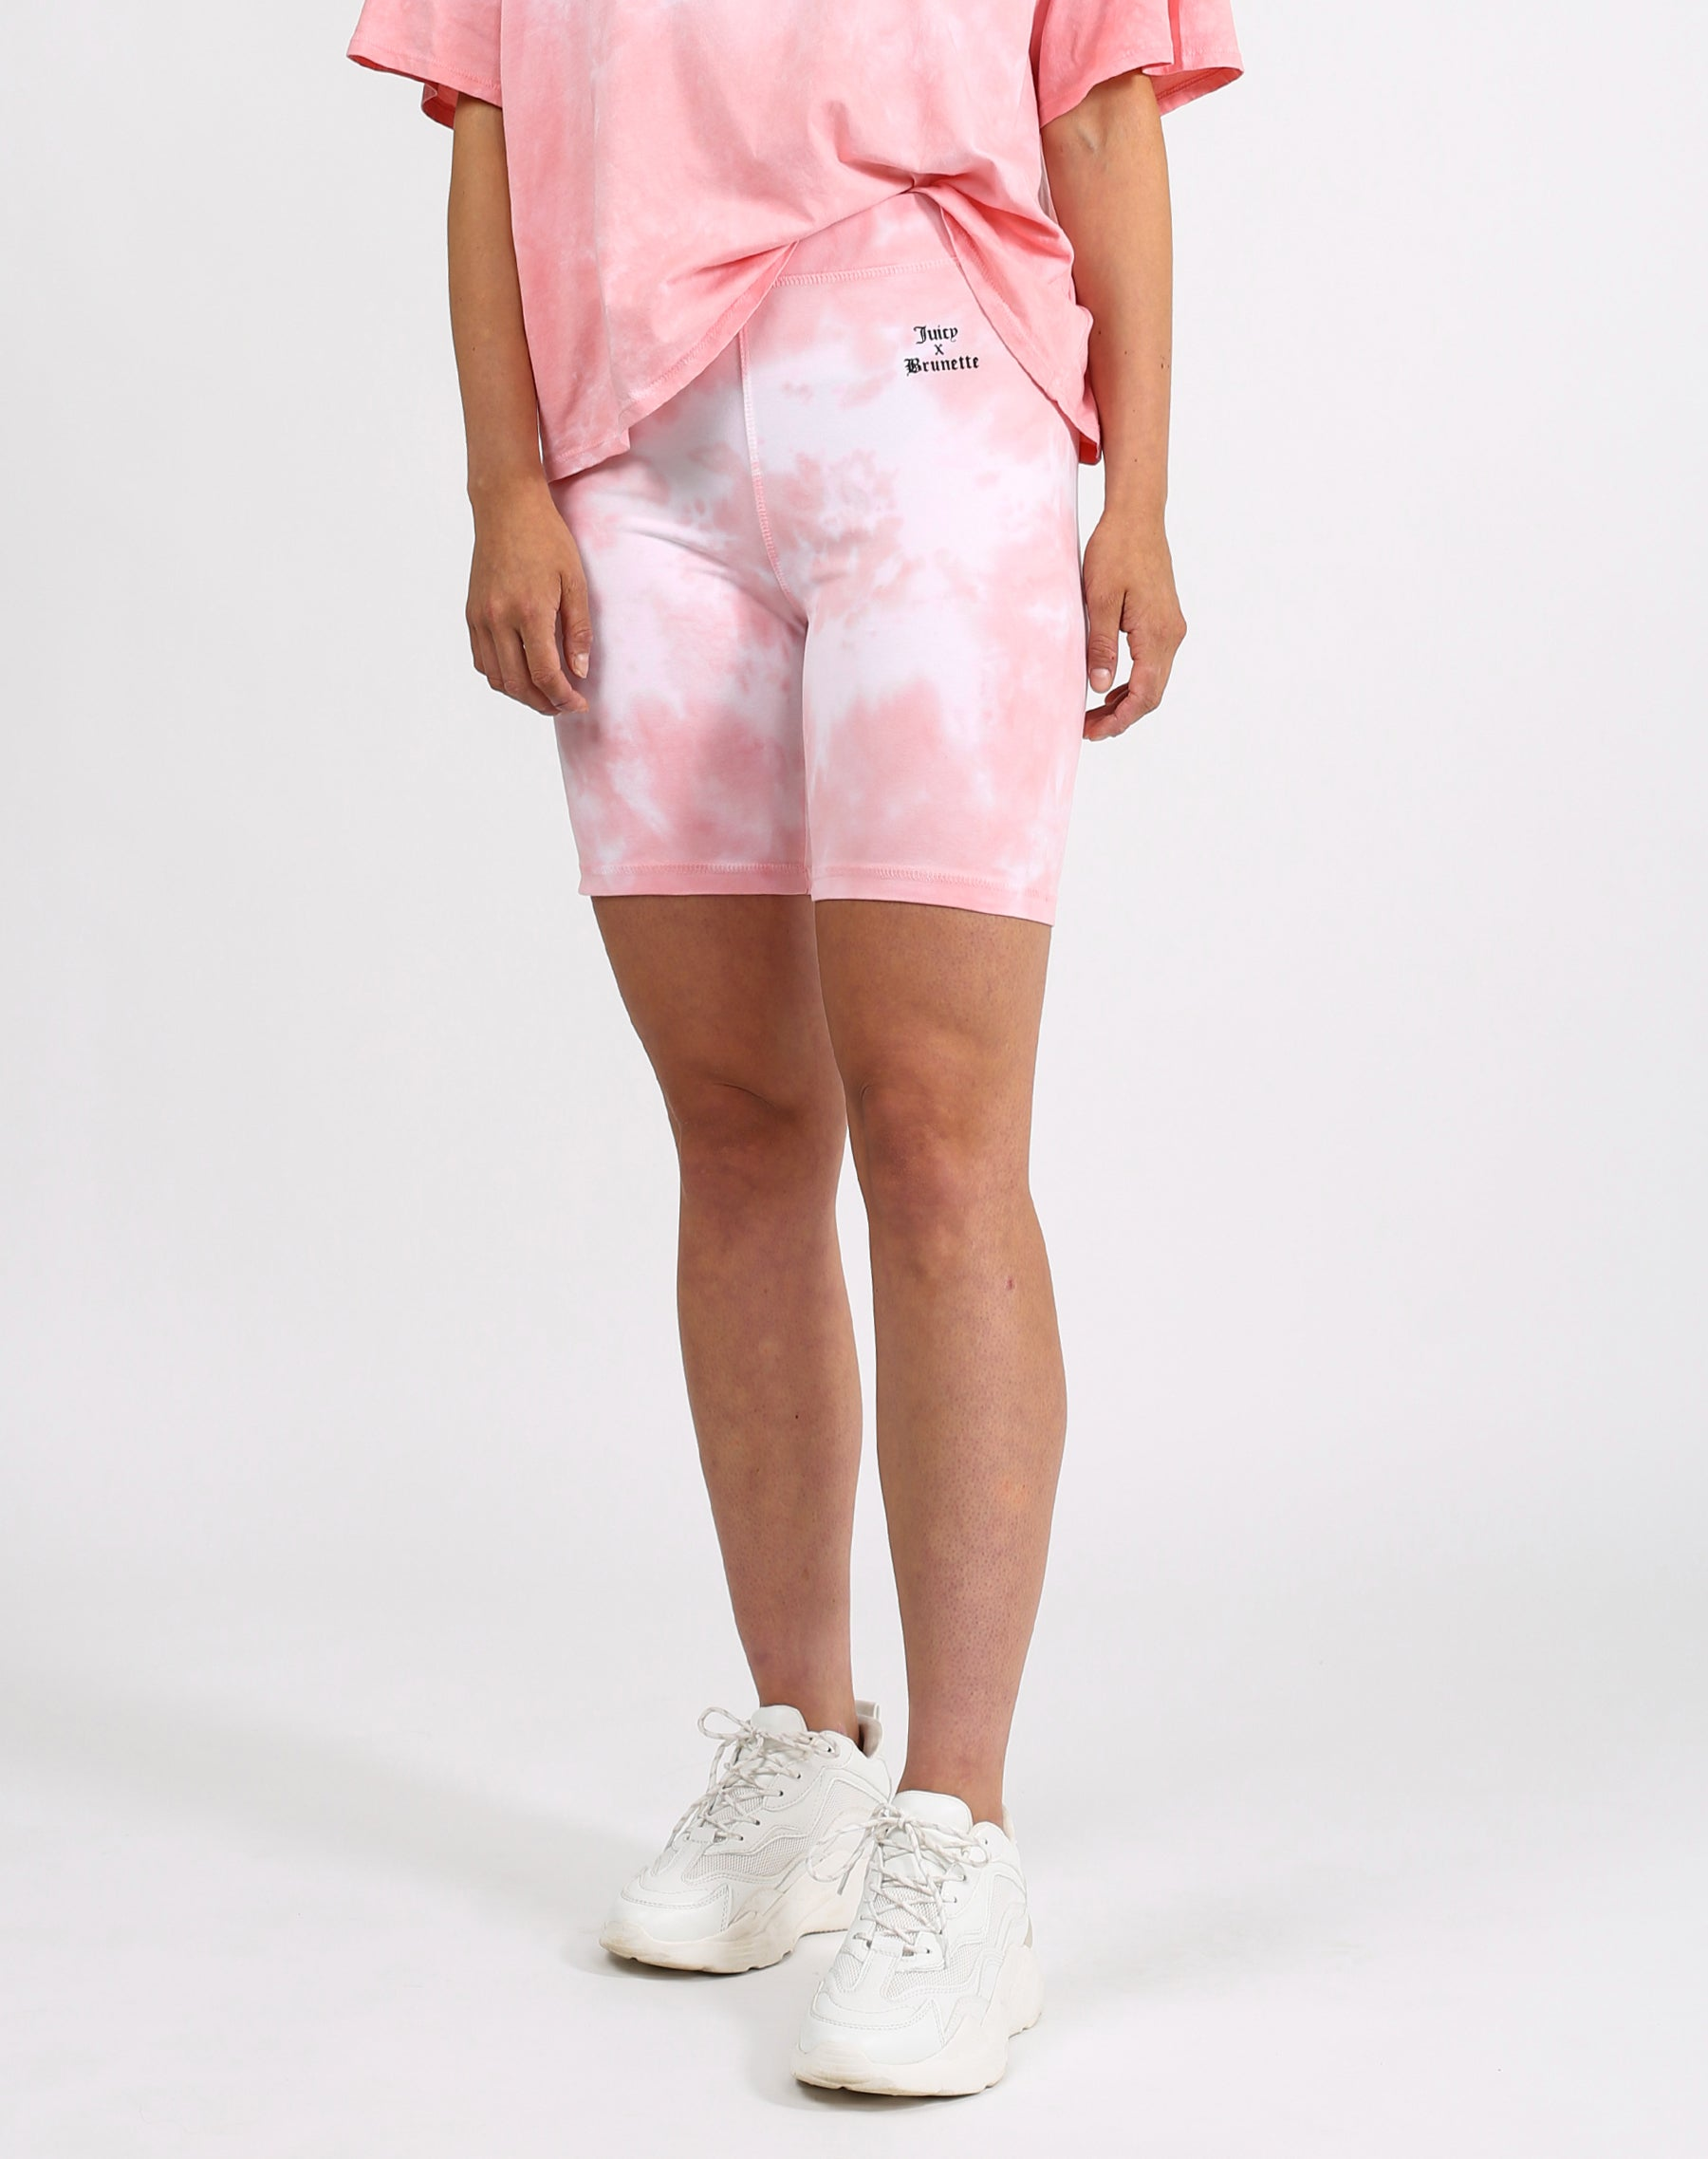 This is a photo of a model wearing the biker shorts in pink marble by Brunette the Label x Juicy Couture.